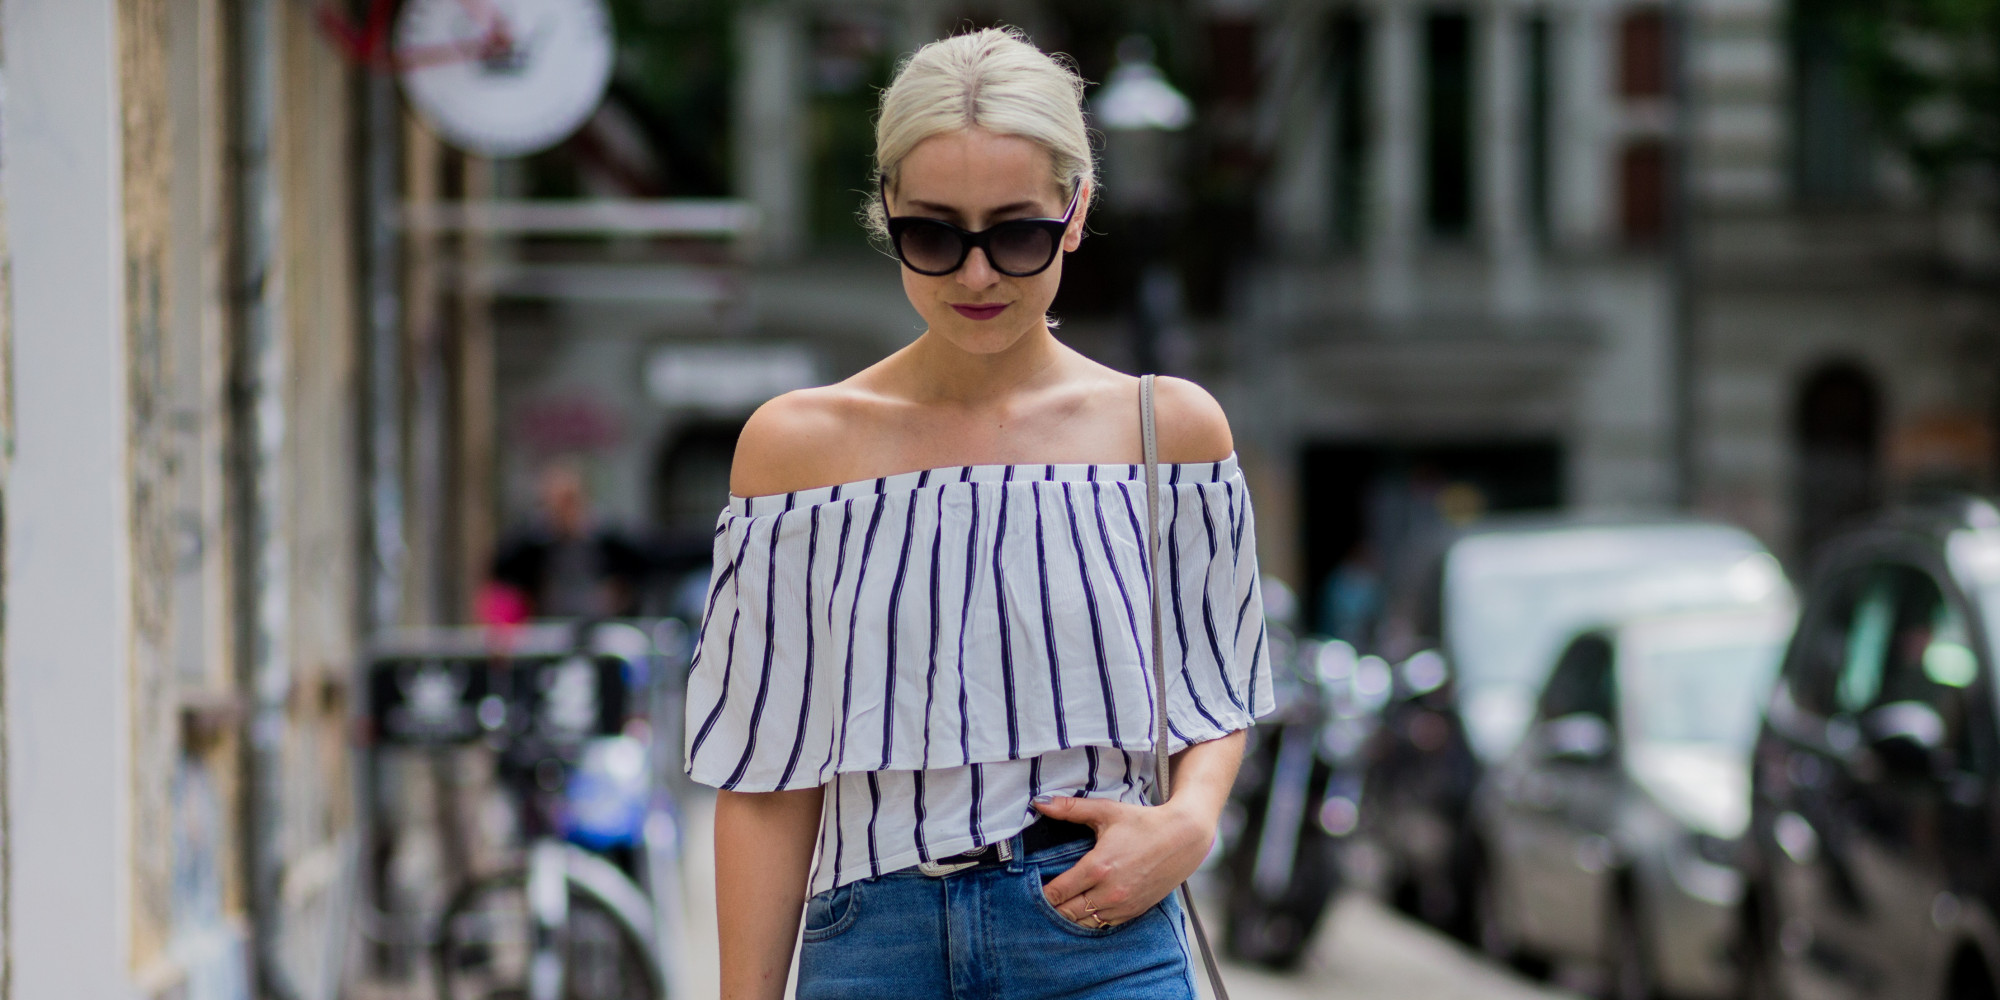 BERLIN, GERMANY - MAY 29: Miriam Mache wearing a white navy striped off shoulder shirt from Zara, a Radley London bag, blue BDG denim jeans, Rodenstock sunglasses on May 29, 2016 in Berlin, Germany. (Photo by Christian Vierig/Getty Images)